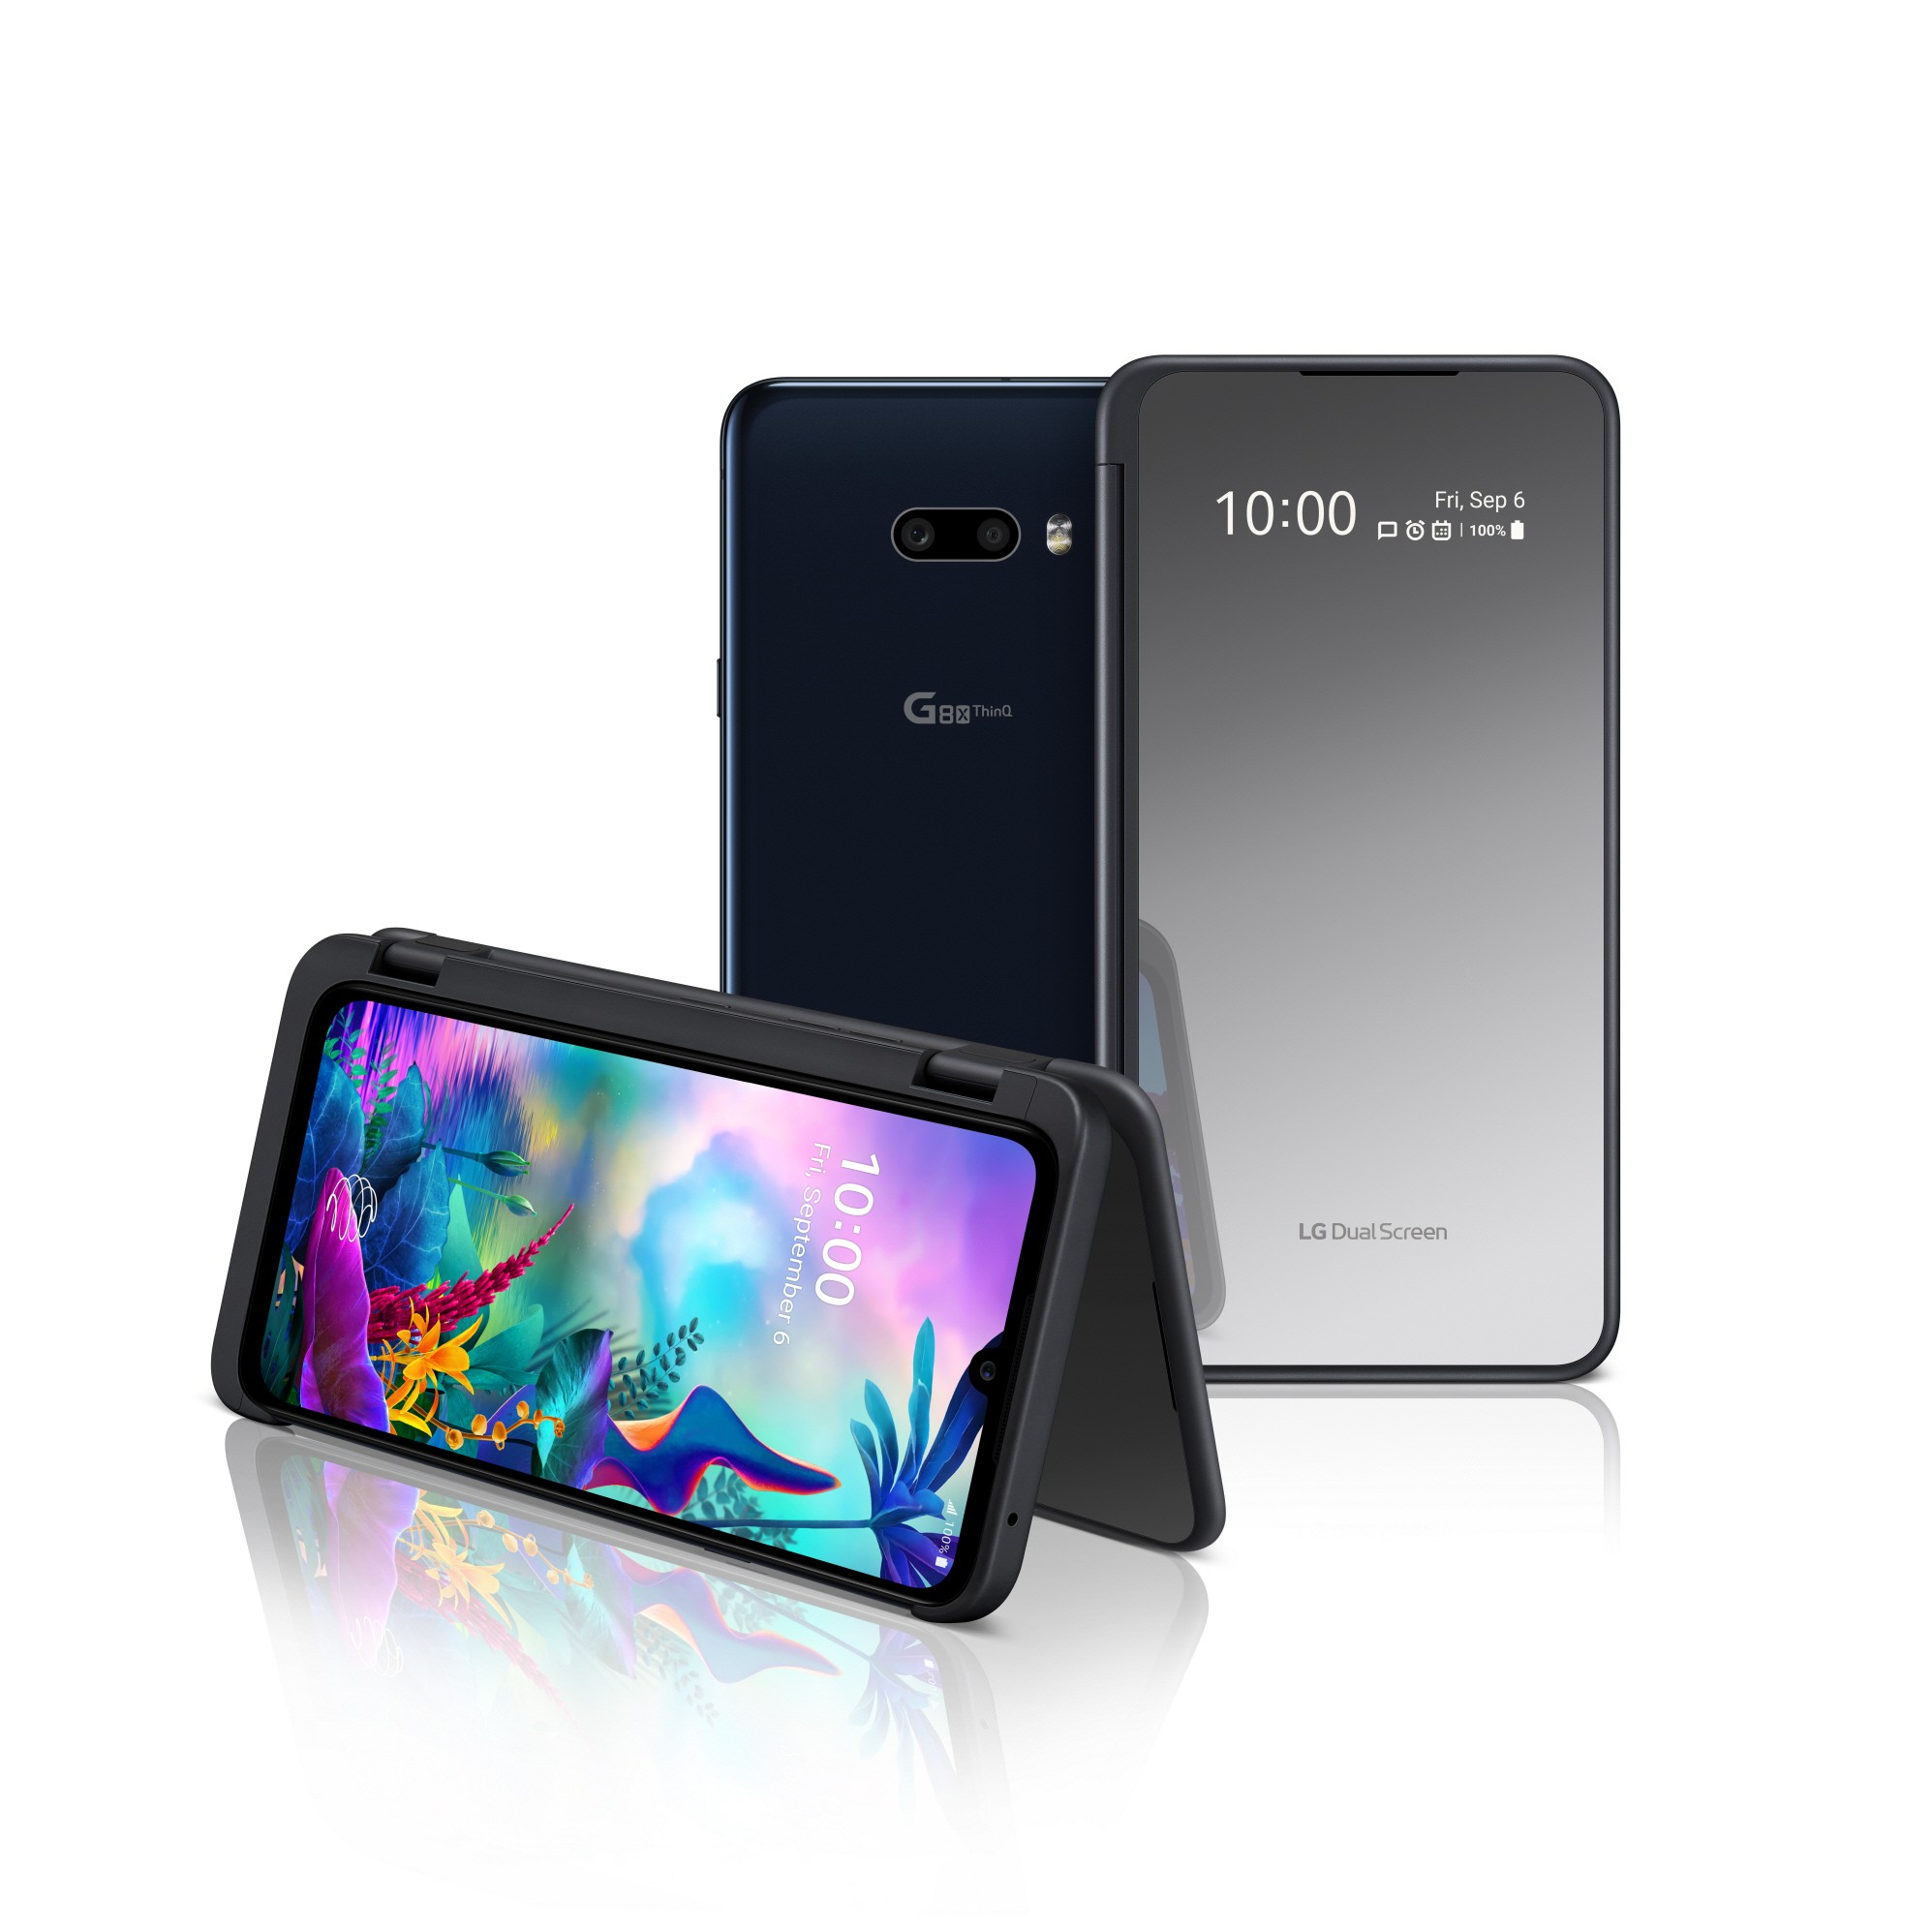 The front and rear view of the LG G8X ThinQ in Aurora Black and the upgraded LG Dual Screen, with the front device folded like a tent